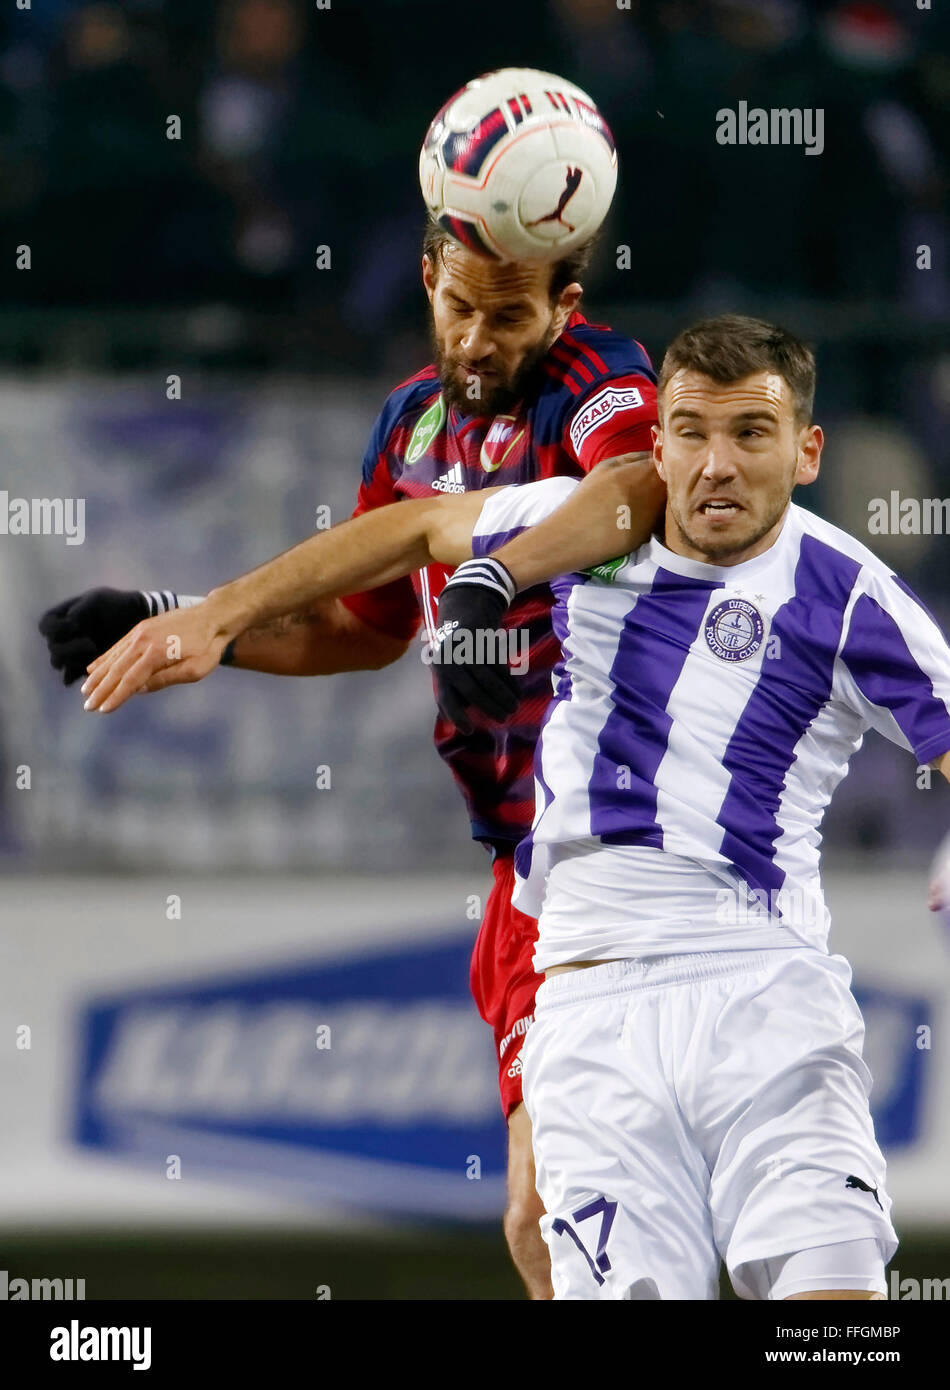 Budapest, Hungary. 13th Feb, 2016. Air battle between Viktor Angelov of Ujpest (r) and Andras Fejes of Videoton - Stock Image